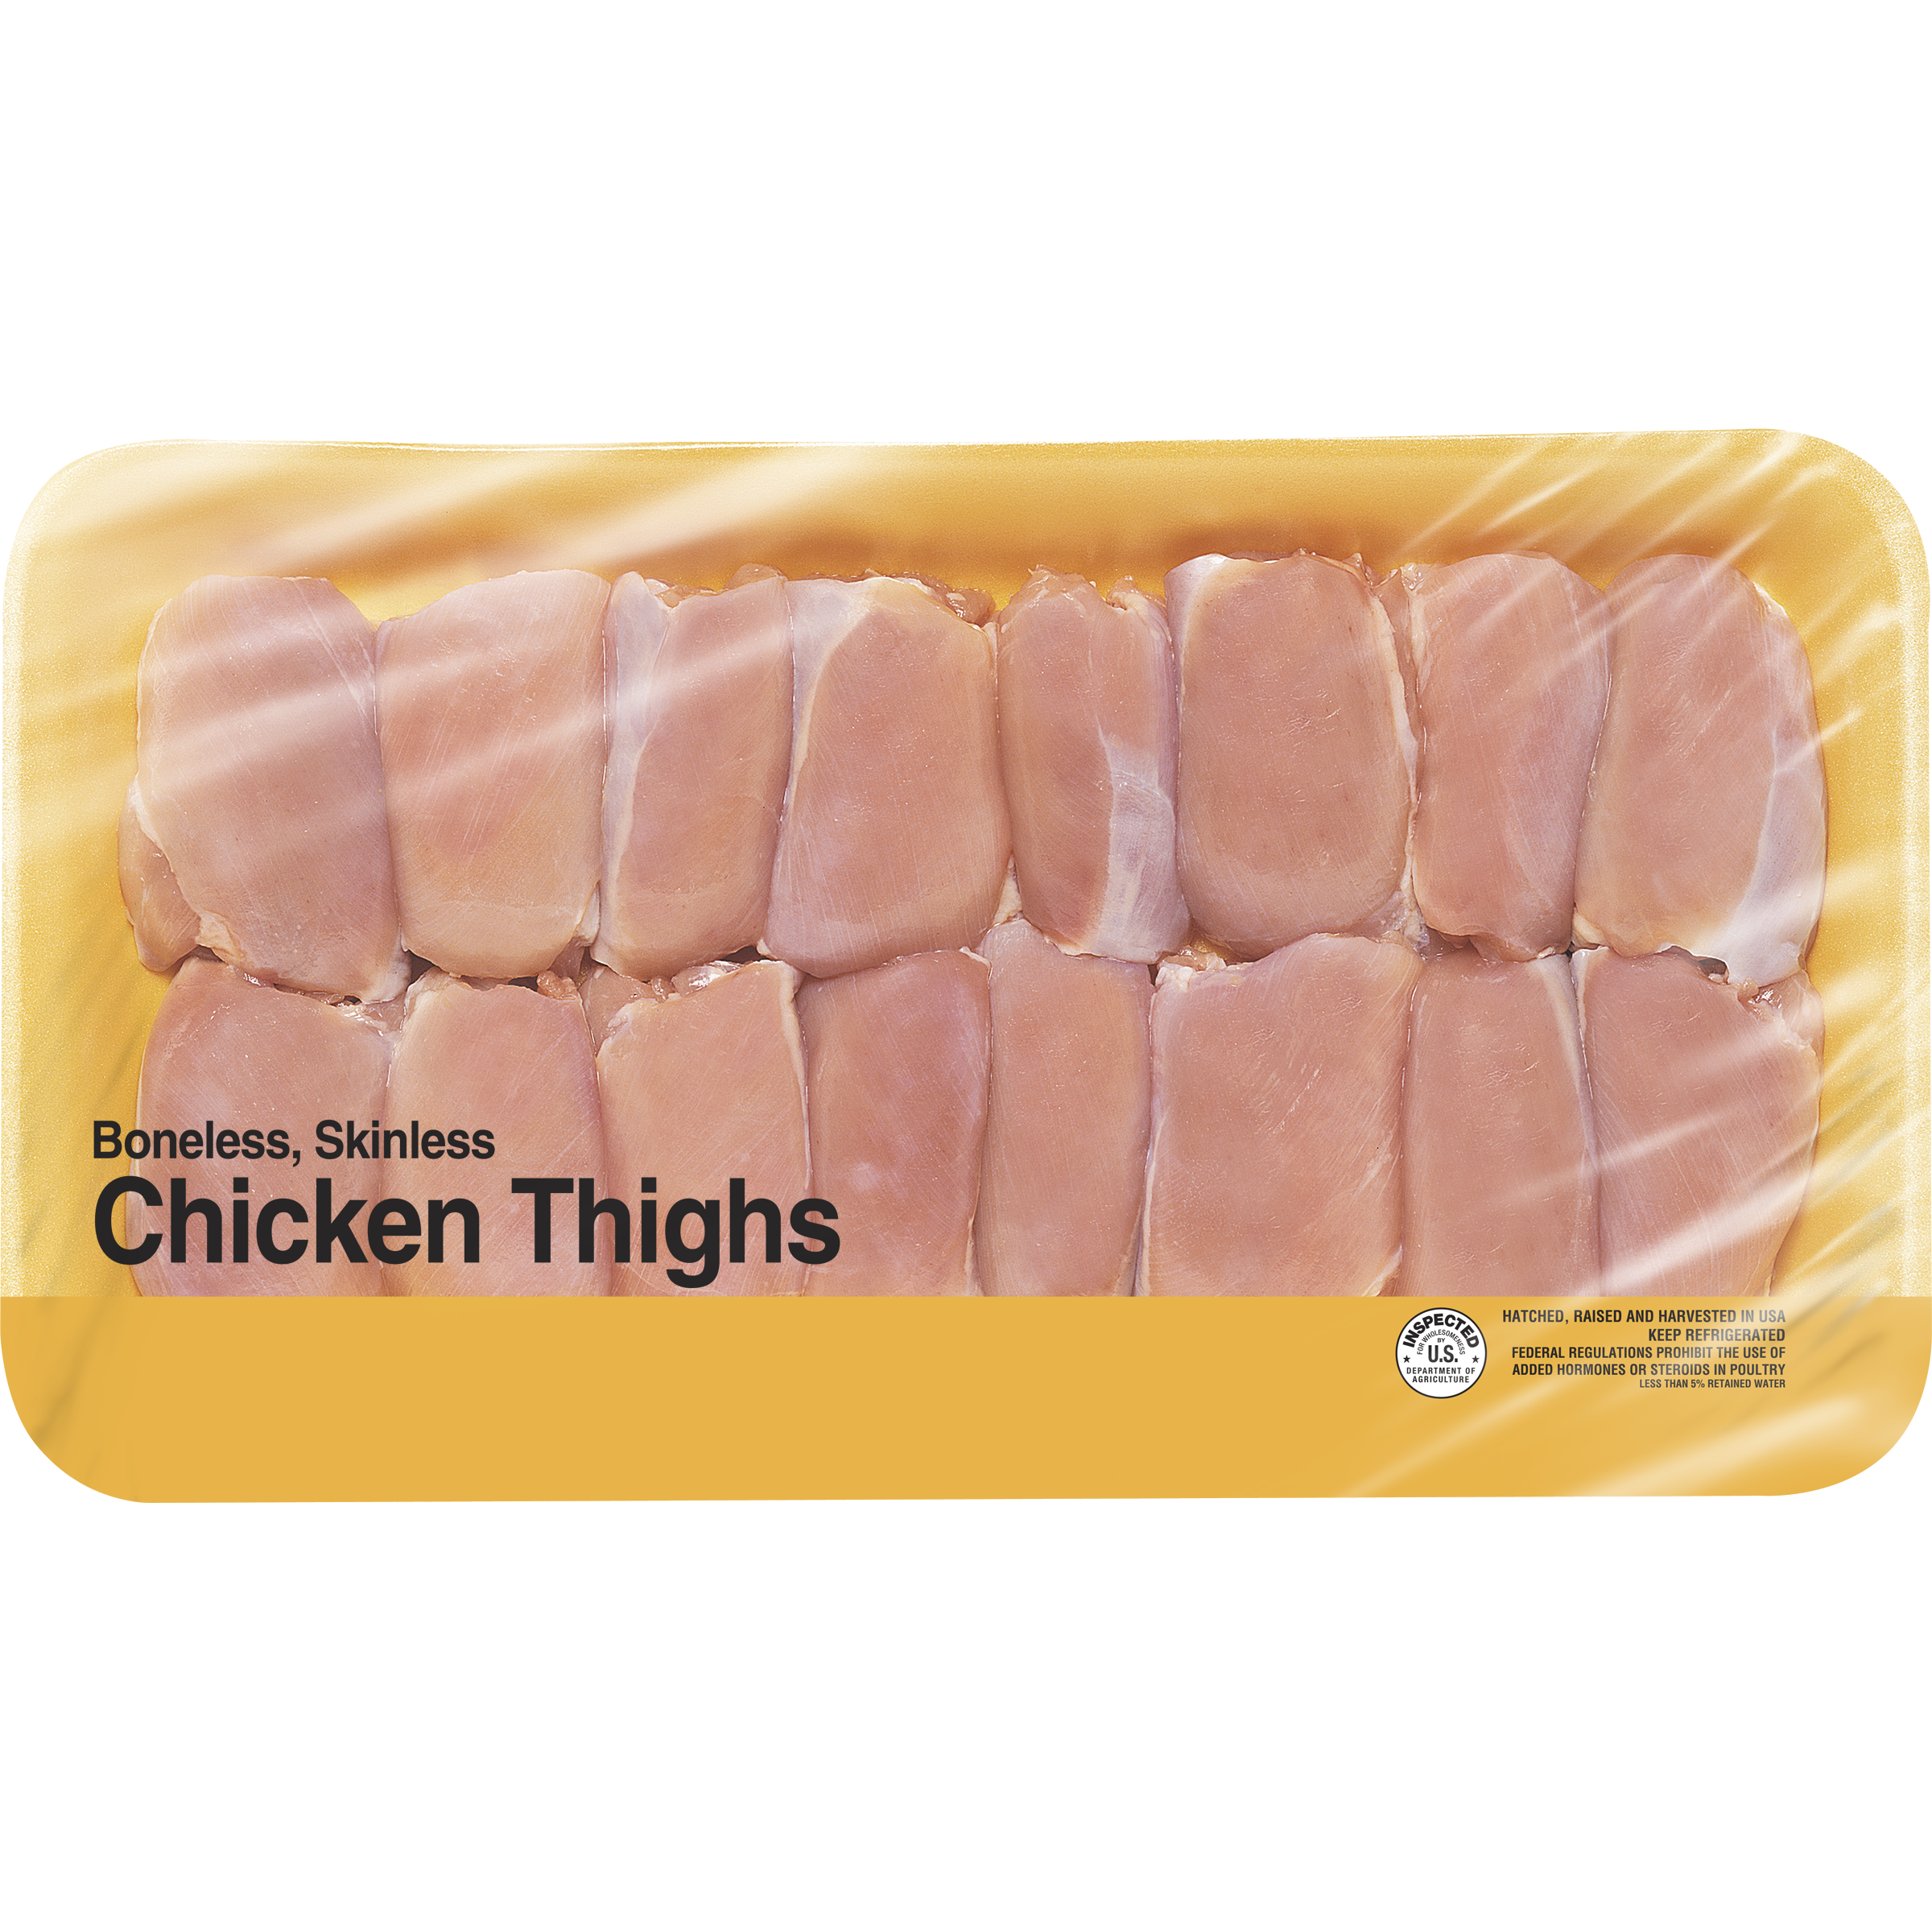 Freshness Guaranteed Boneless Skinless Chicken Thighs Family Pack, 4.7 - 5.6 lb